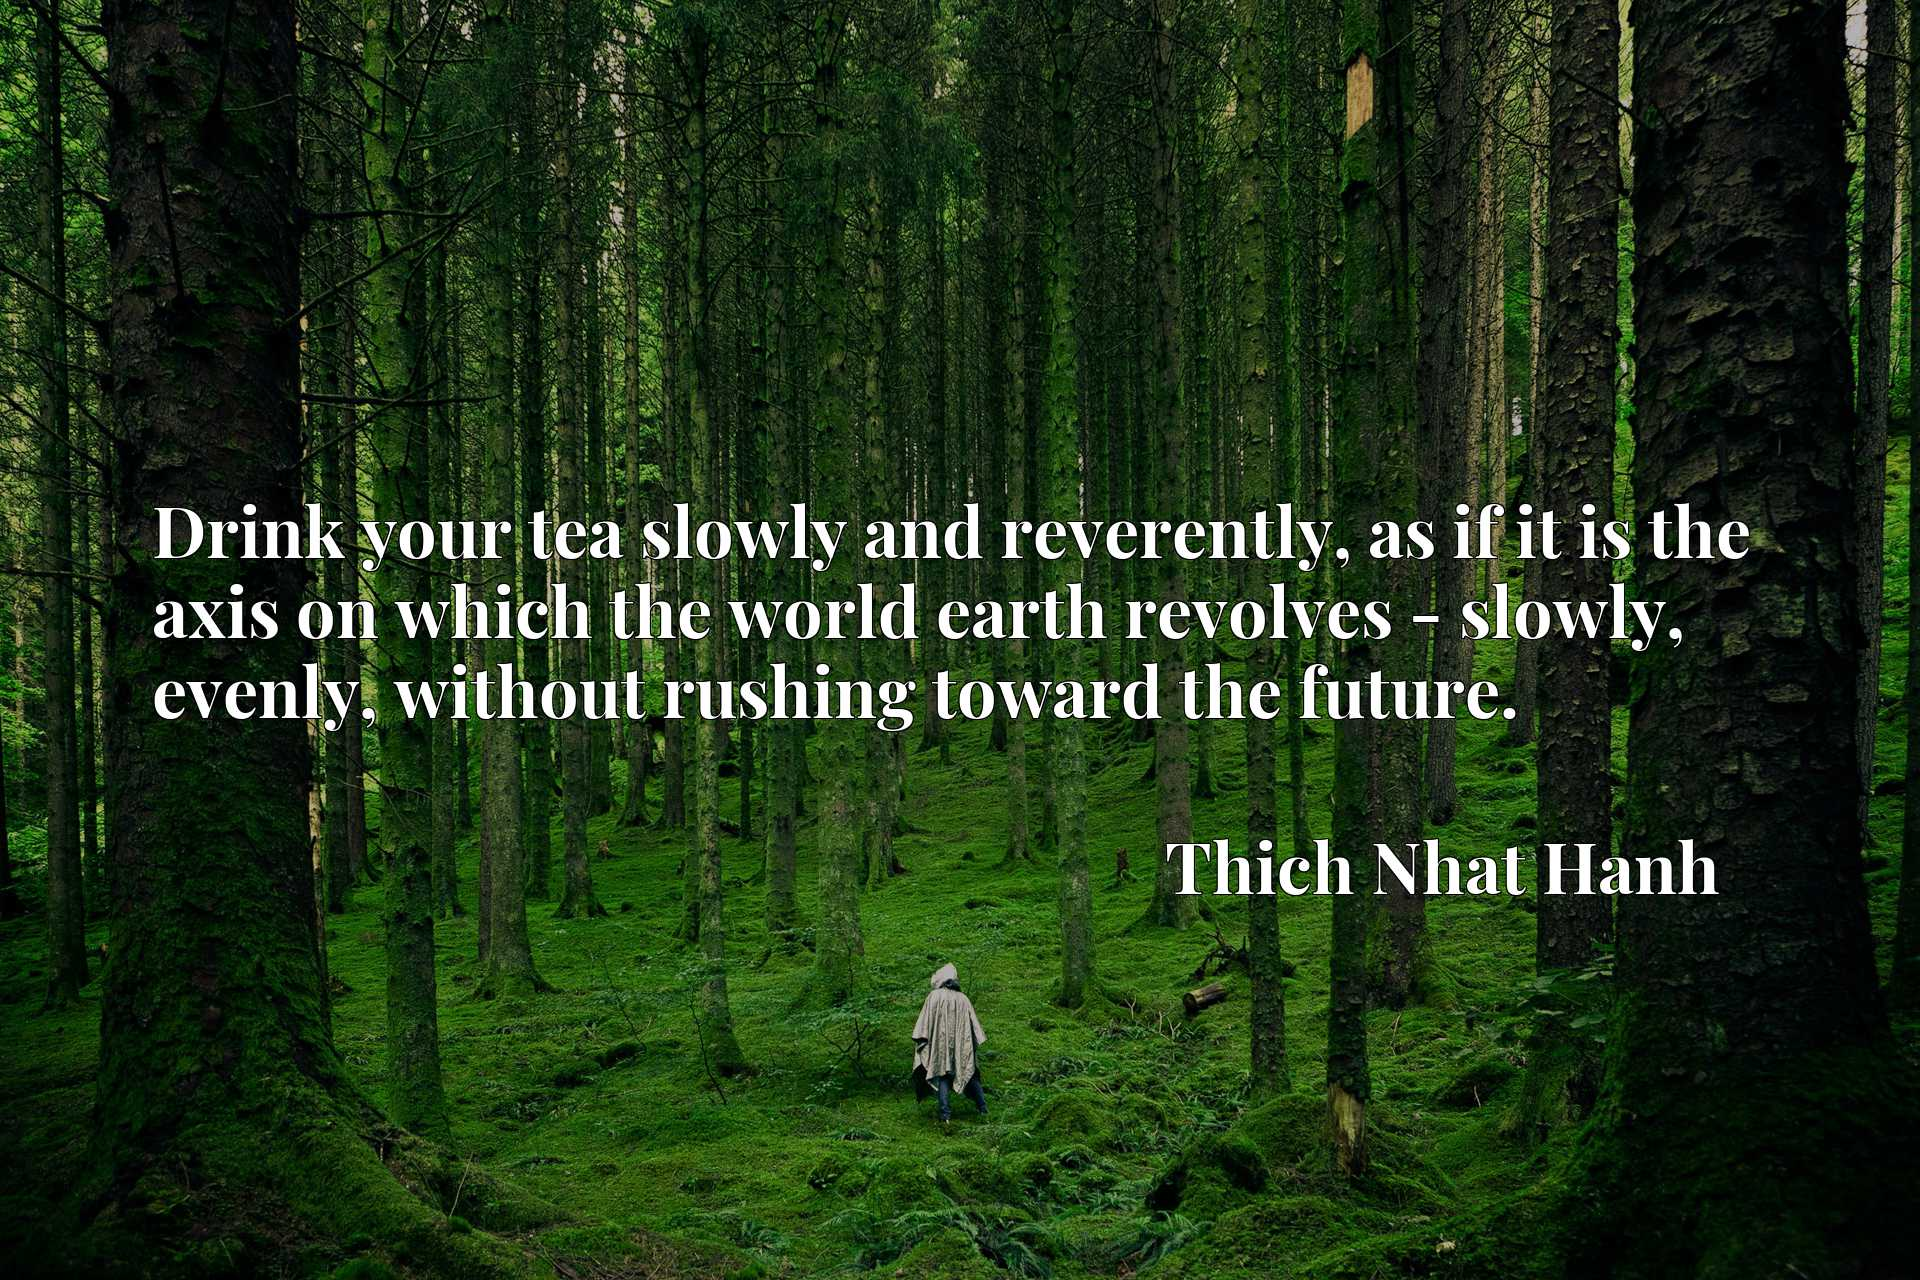 Drink your tea slowly and reverently, as if it is the axis on which the world earth revolves - slowly, evenly, without rushing toward the future.